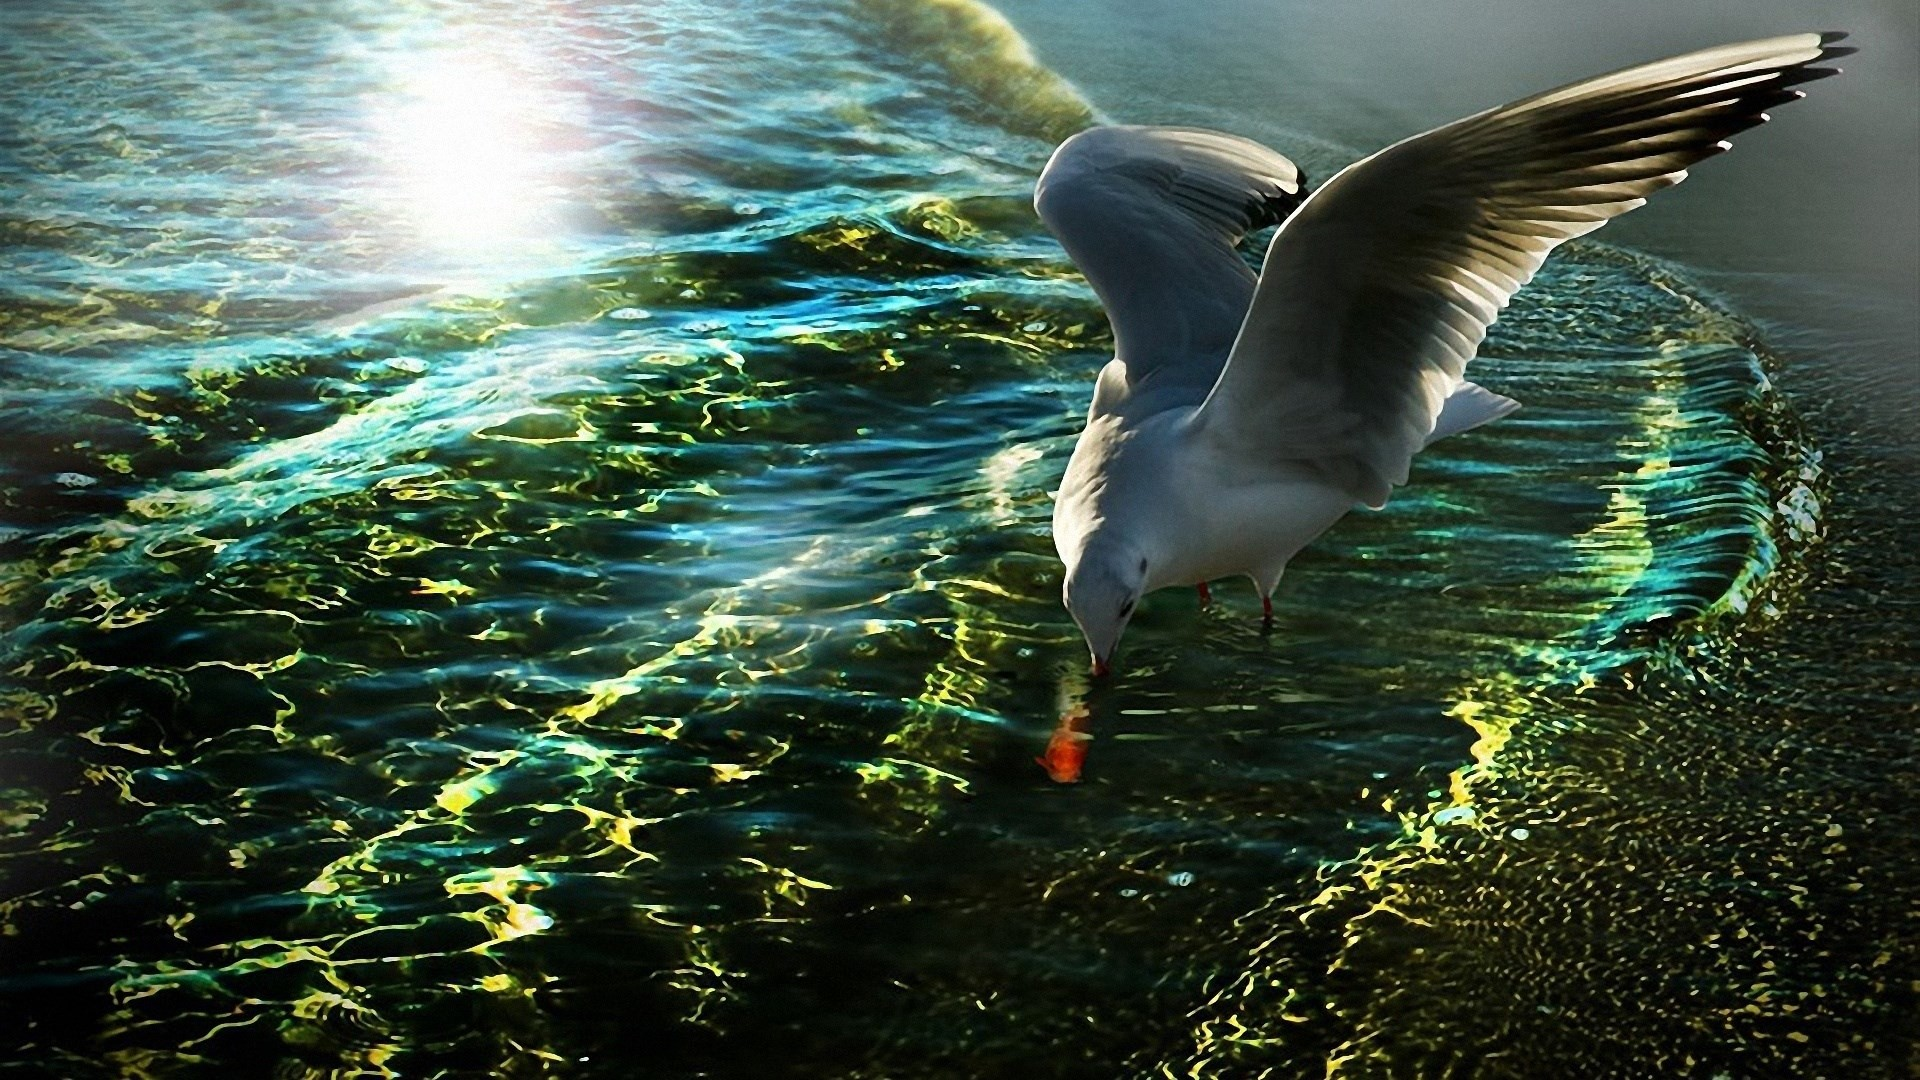 1920x1080 seagull background wallpaper free, Godric Nail 2017-03-05